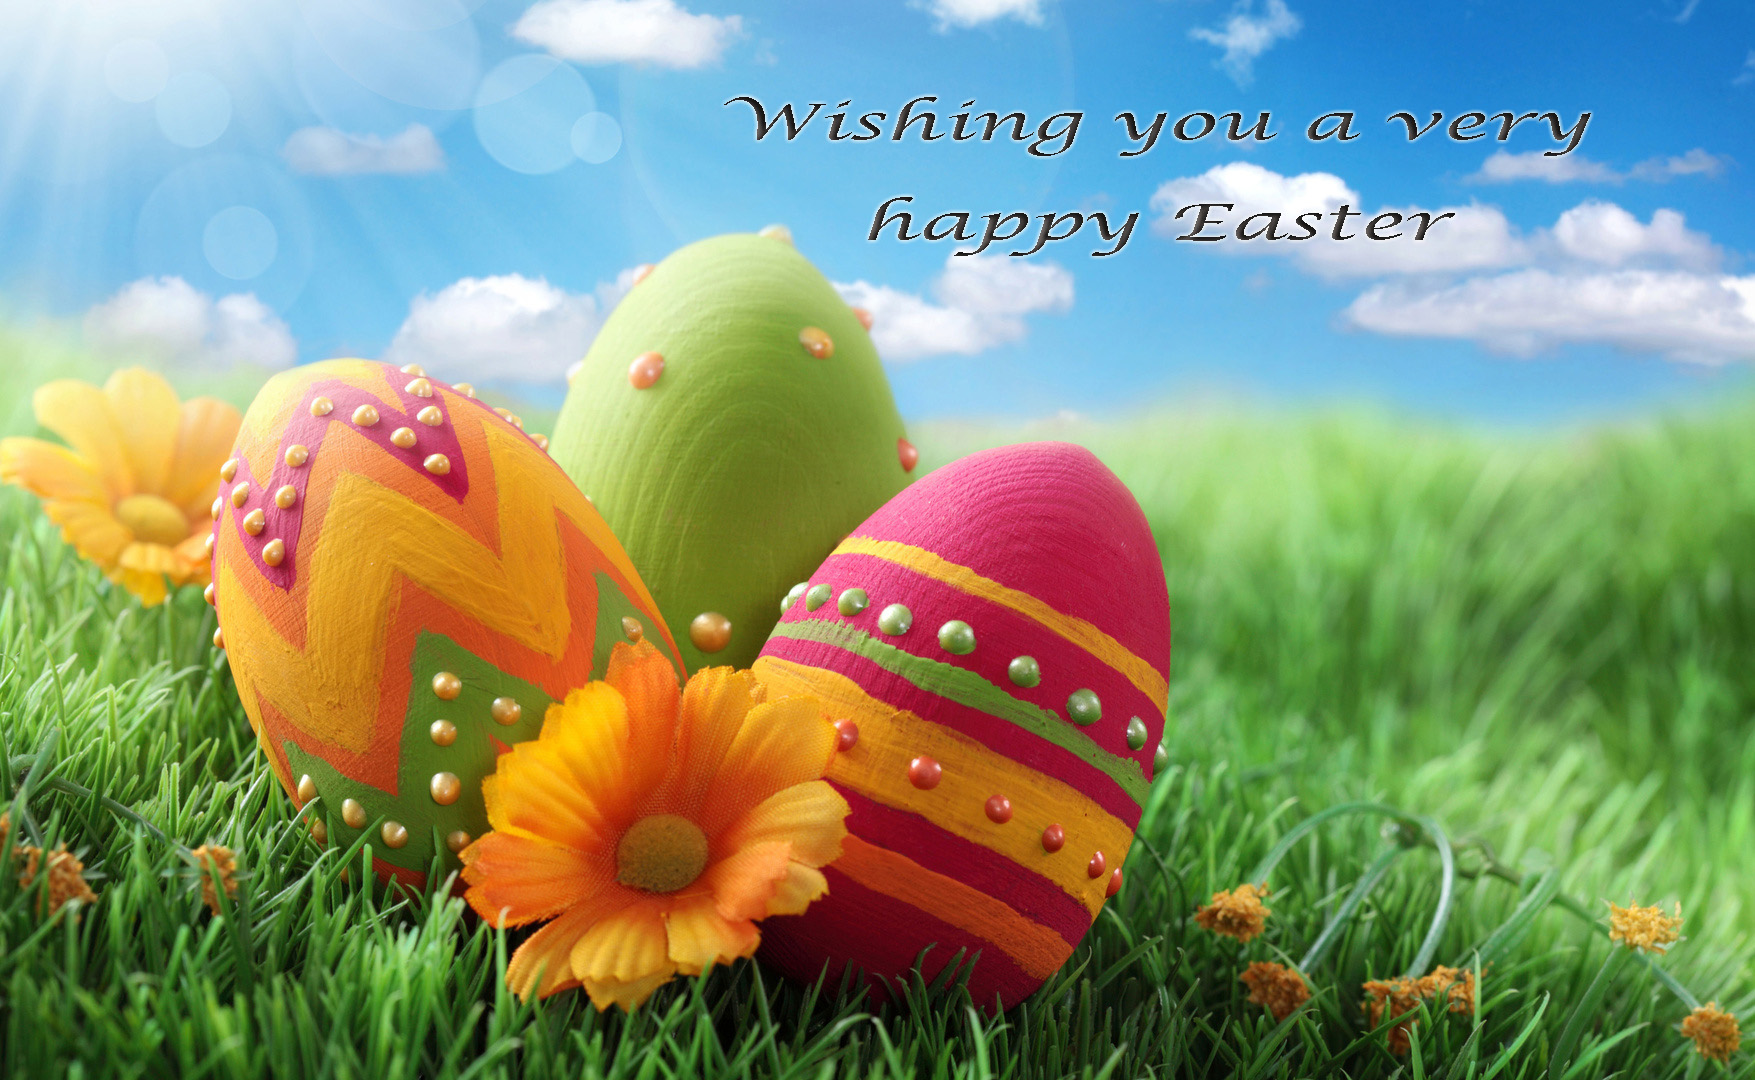 Ilanga Easter greeting